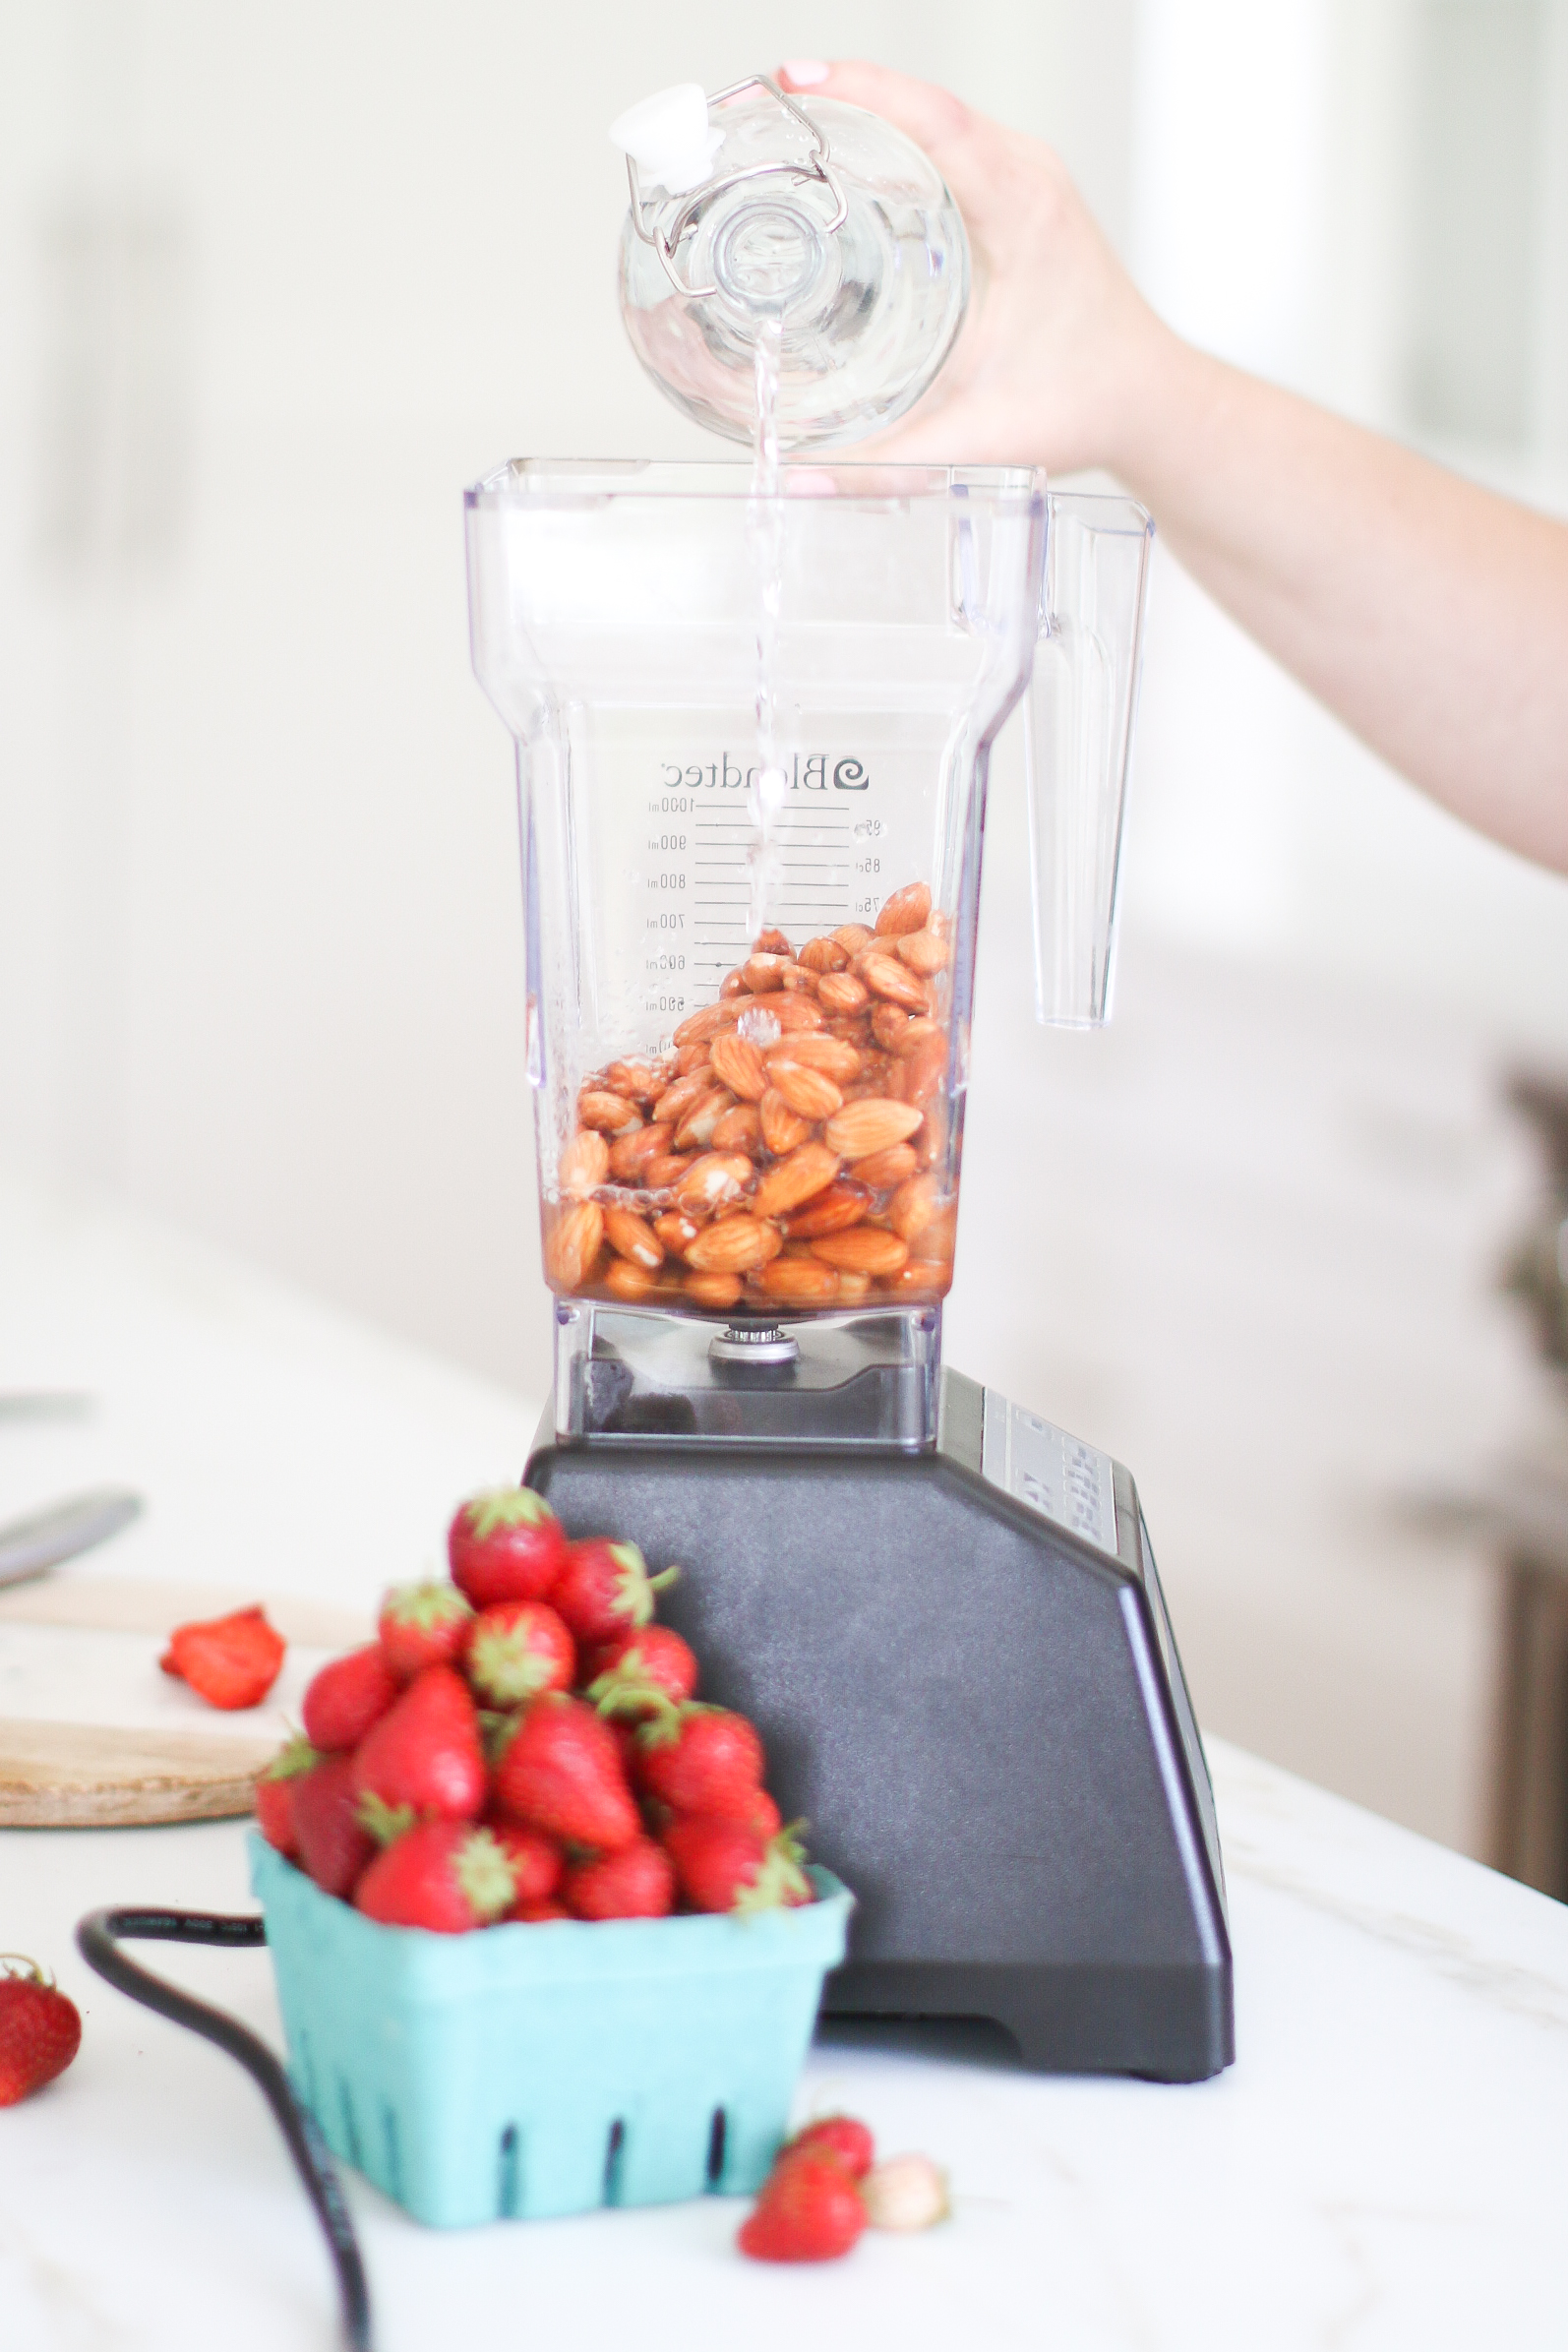 Strawberry Almond Milk DIY Recipe Monika Hibbs